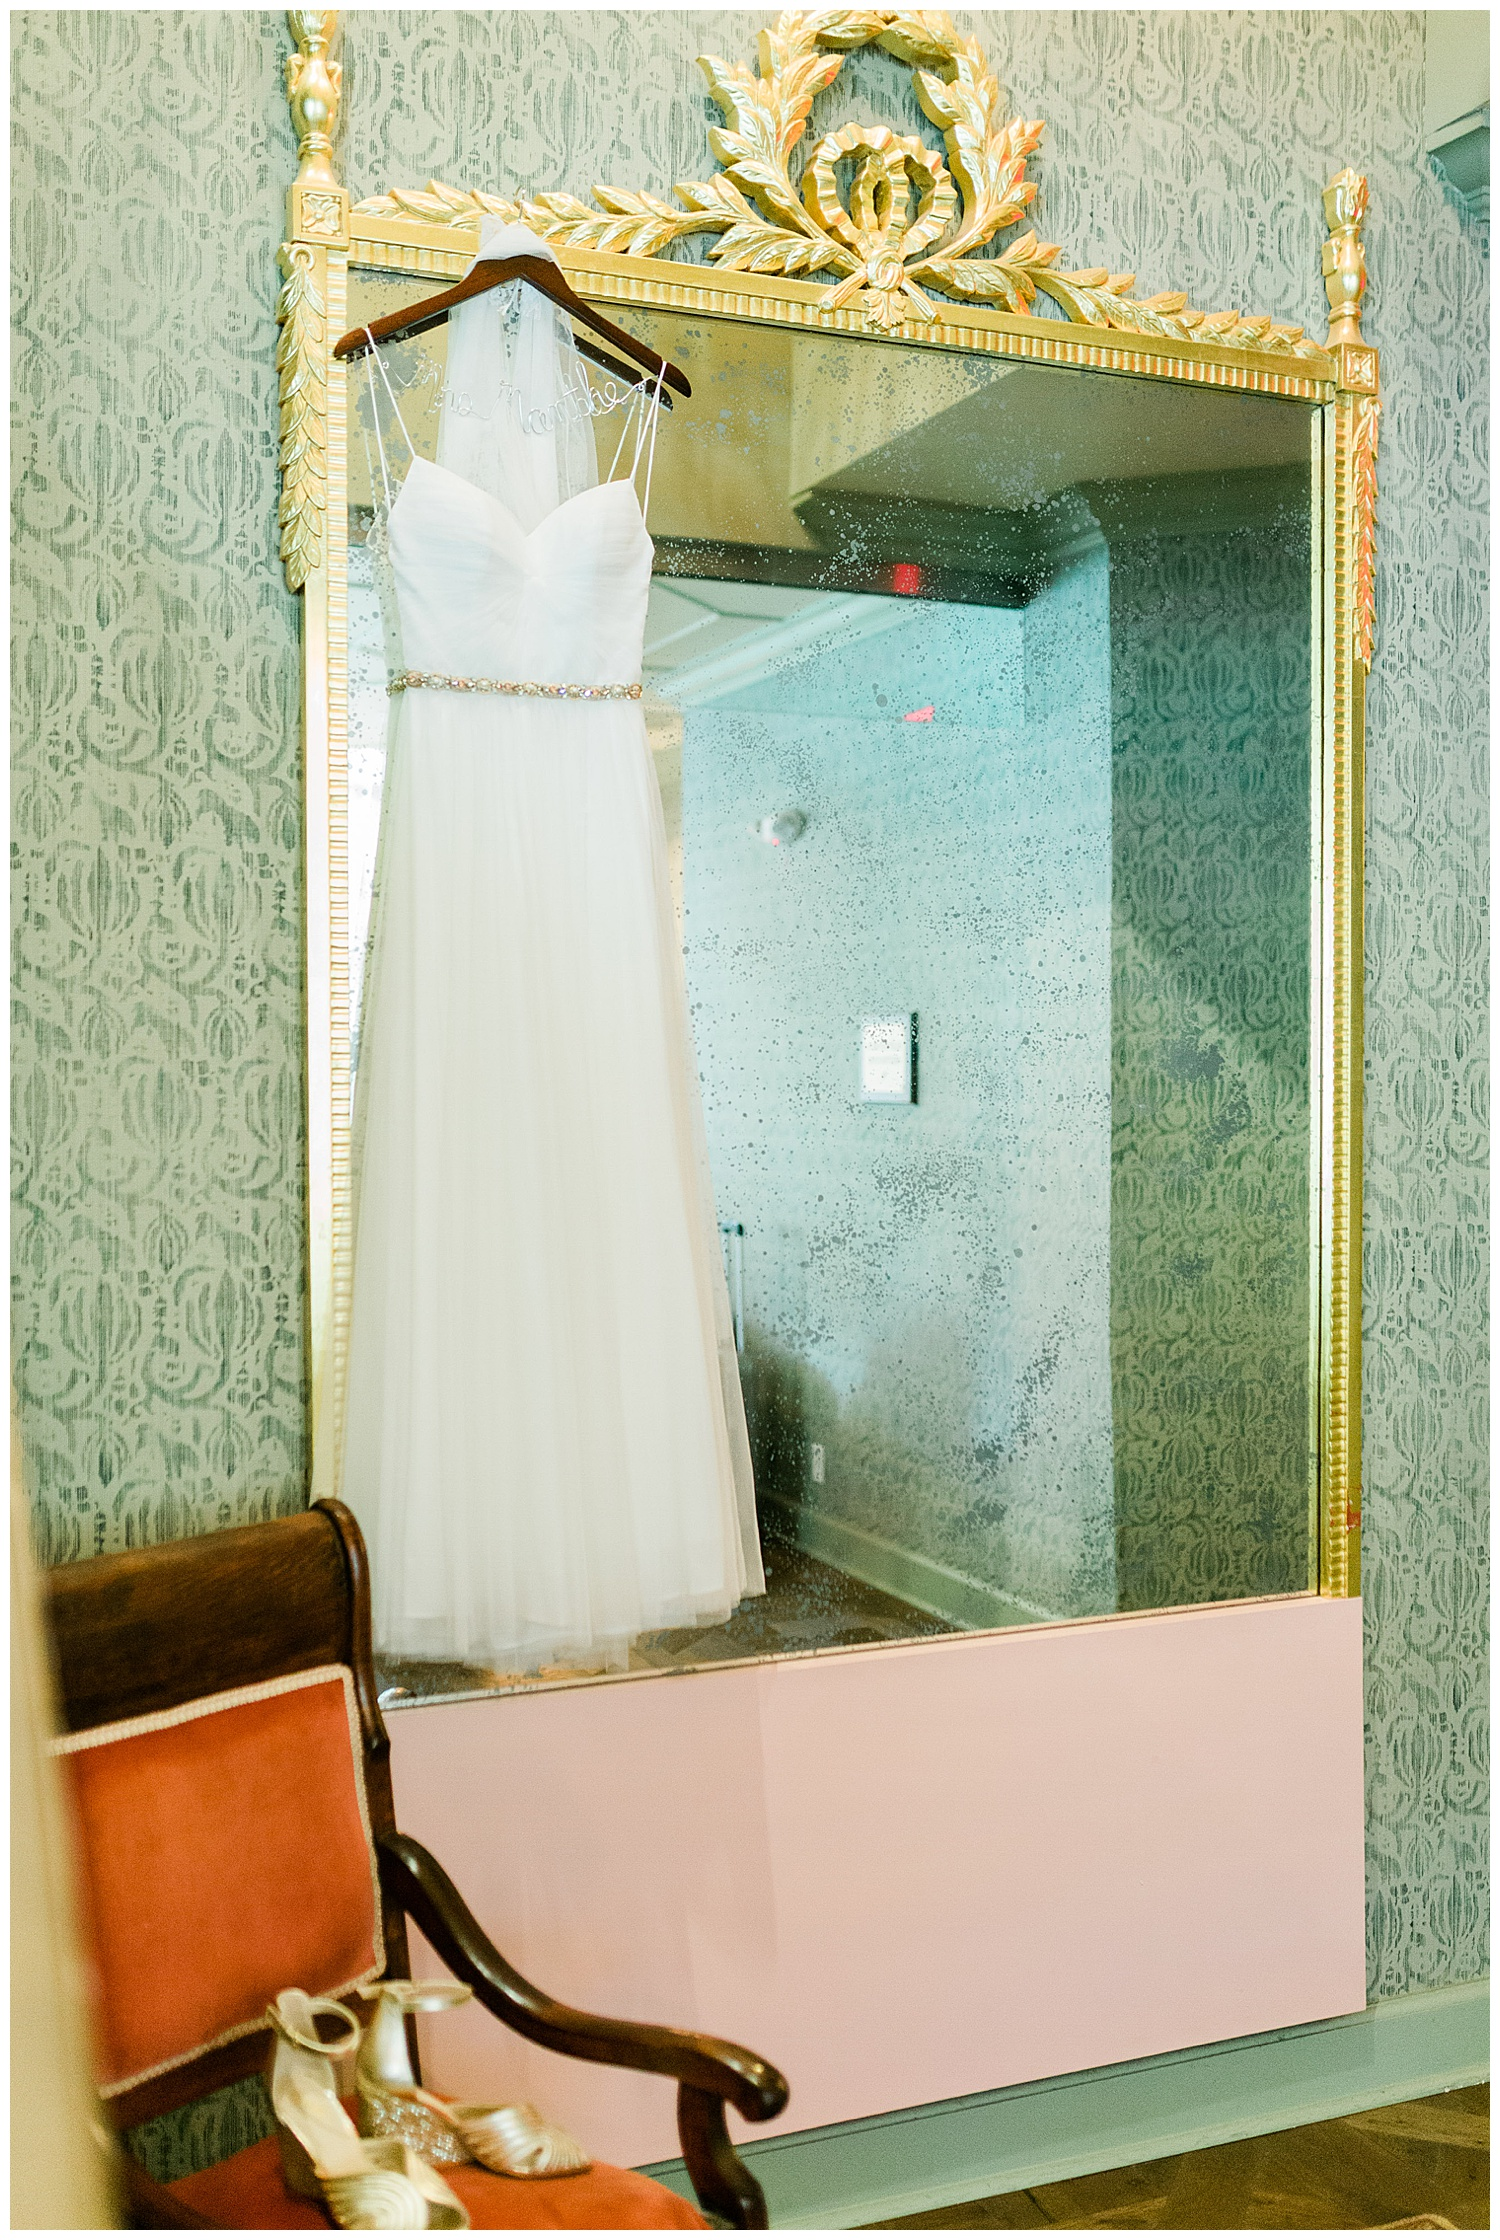 Charlottesville wedding photography - Graduate Hotel